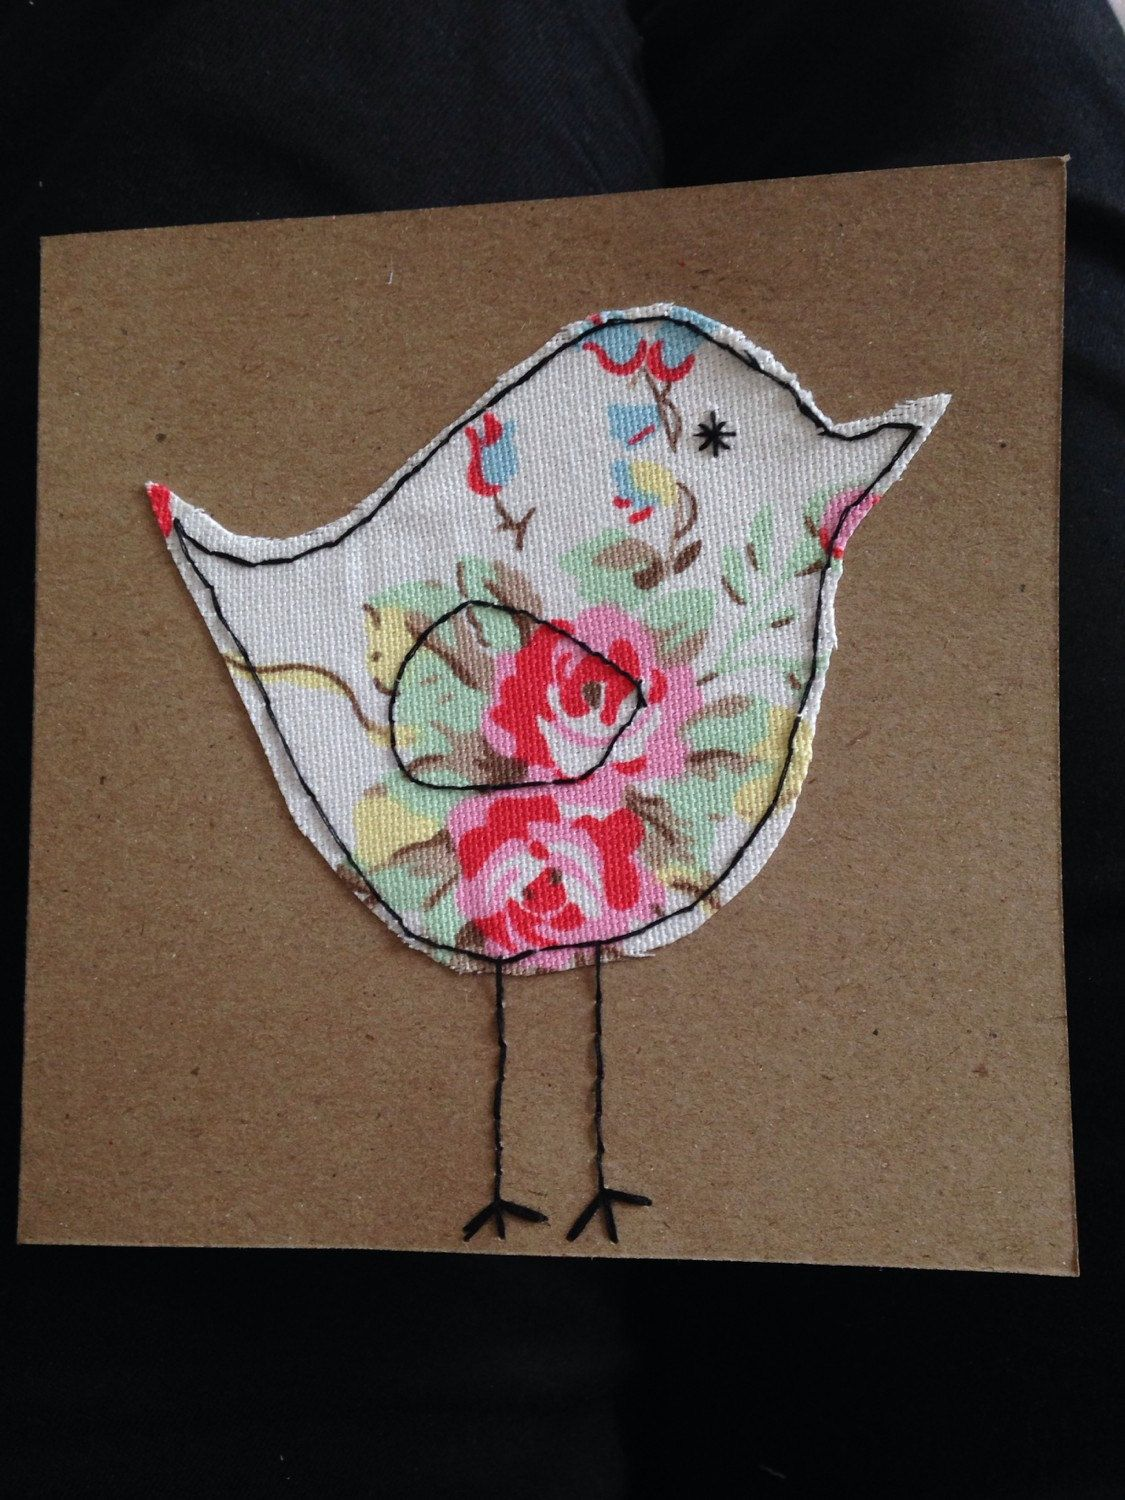 Cath kidston cath kidston birthday card fabric greeting card cath kidston cath kidston birthday card fabric greeting card stitched card bird kristyandbryce Image collections